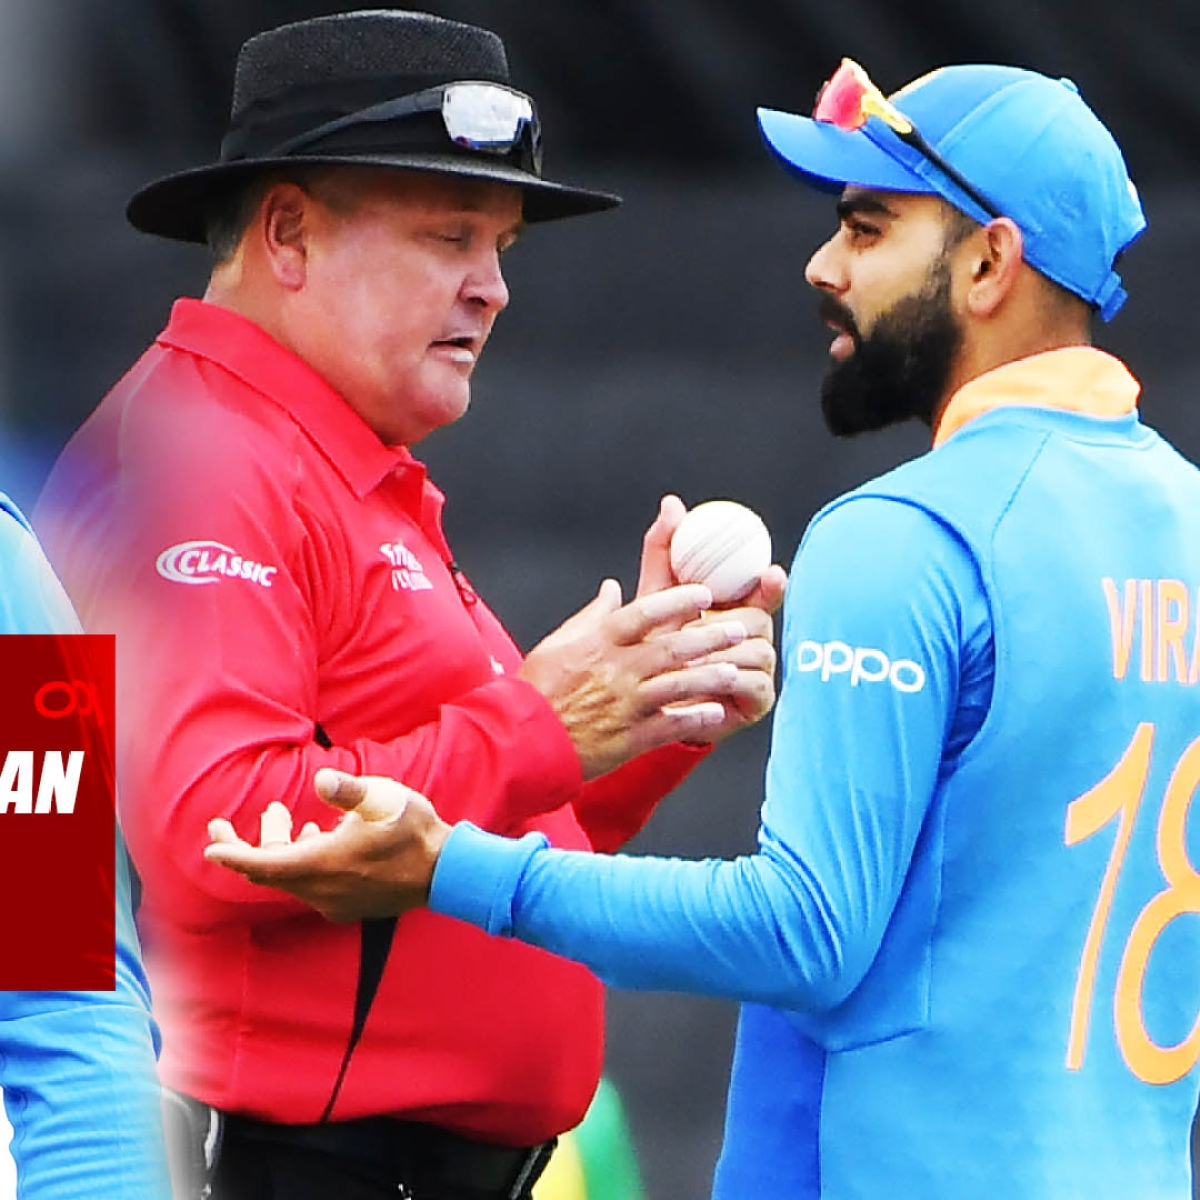 World Cup 2019: Virat Kohli Could Face A BAN Before Semi-Finals For Arguing With Umpire